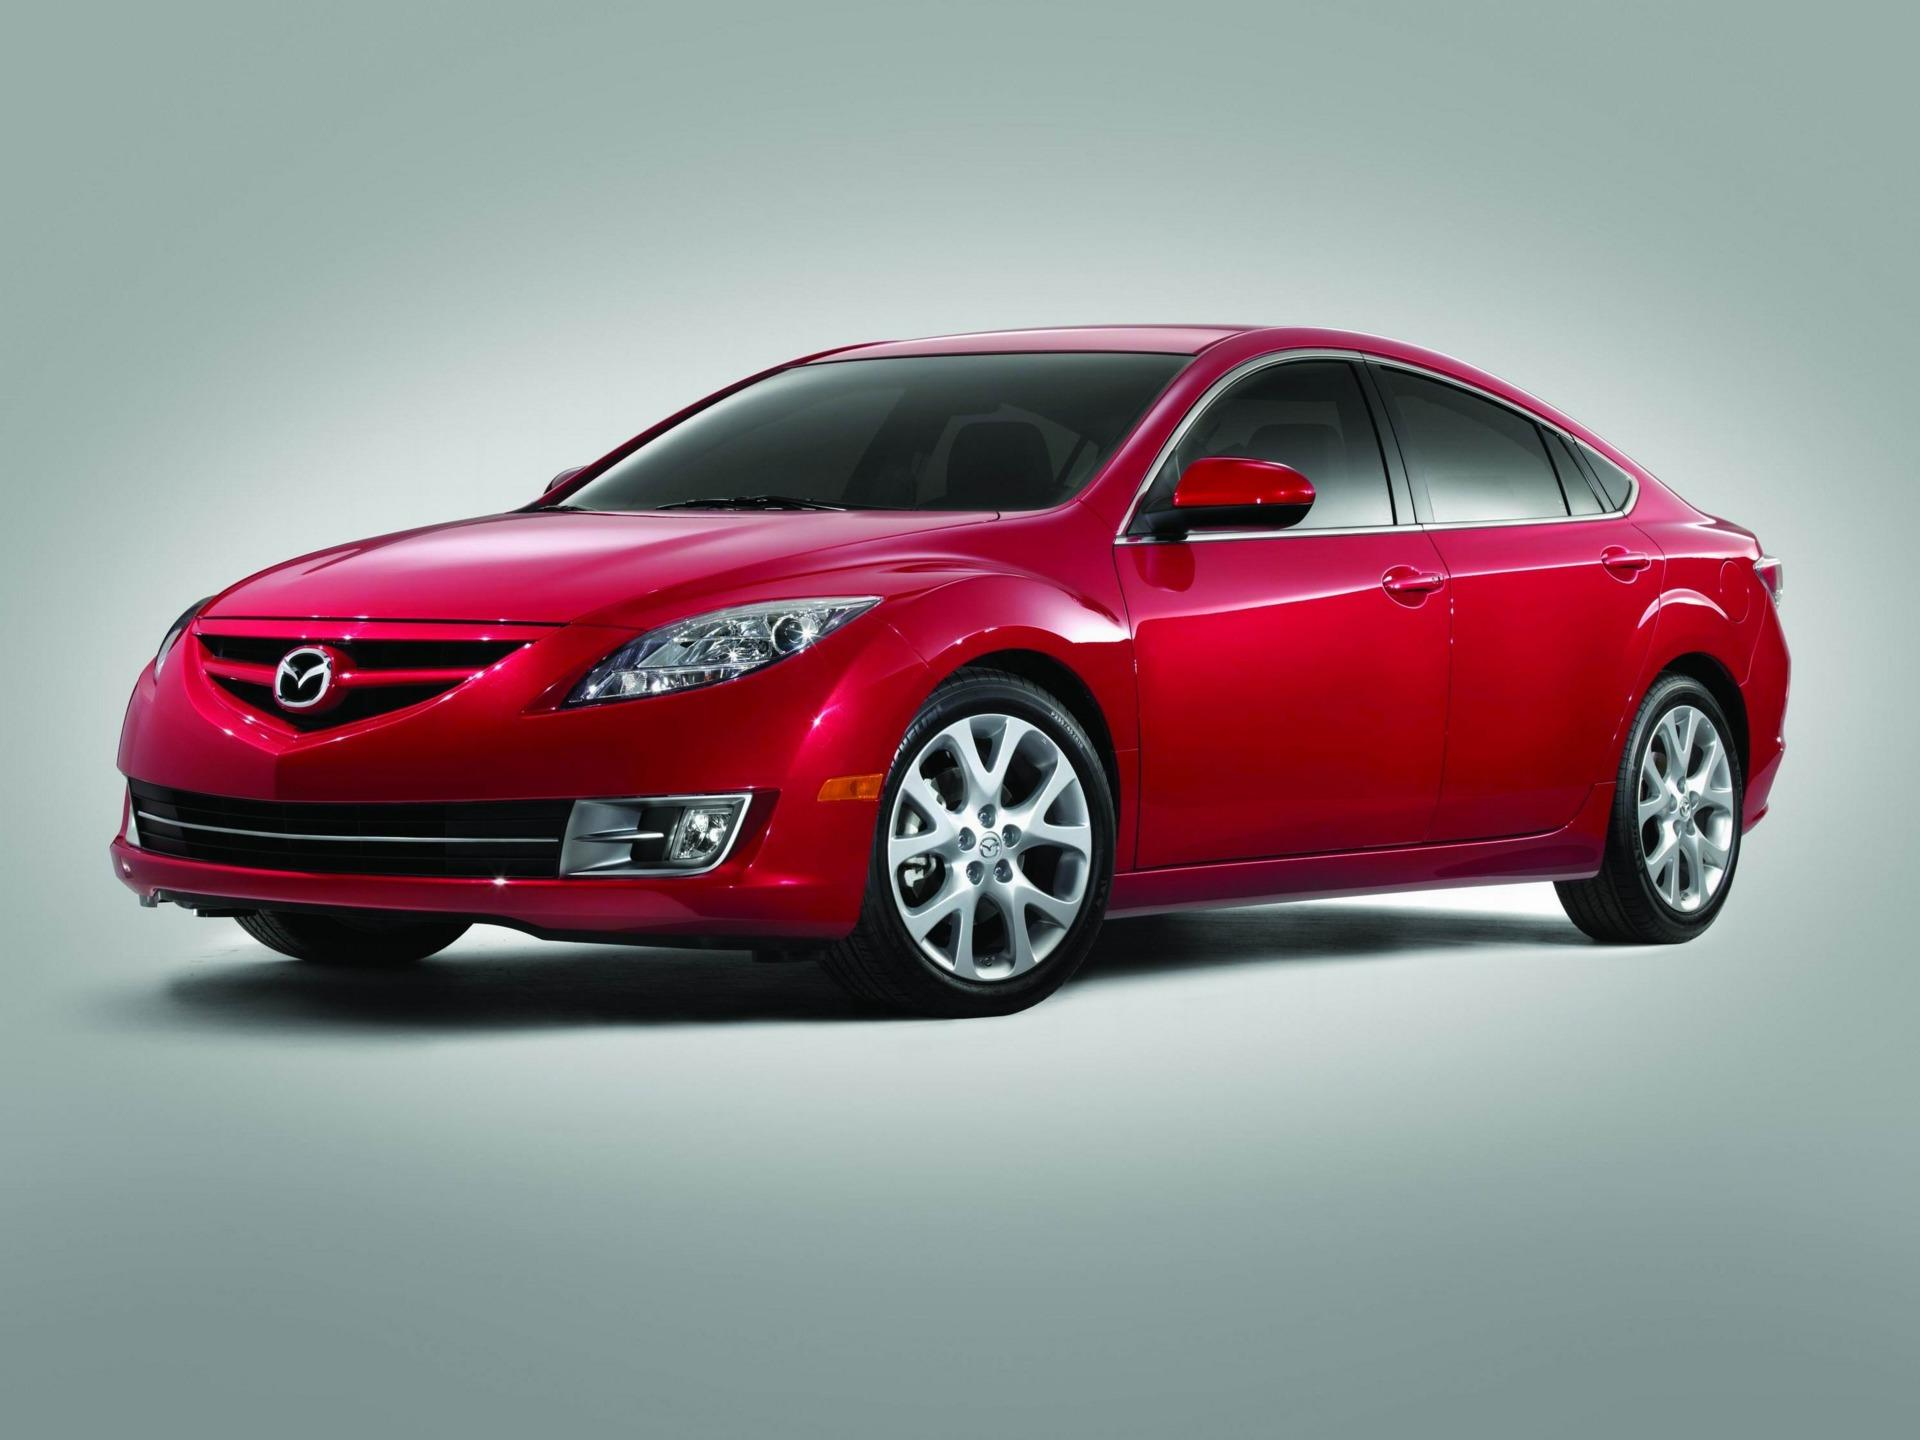 2009 mazda 6 news and information. Black Bedroom Furniture Sets. Home Design Ideas